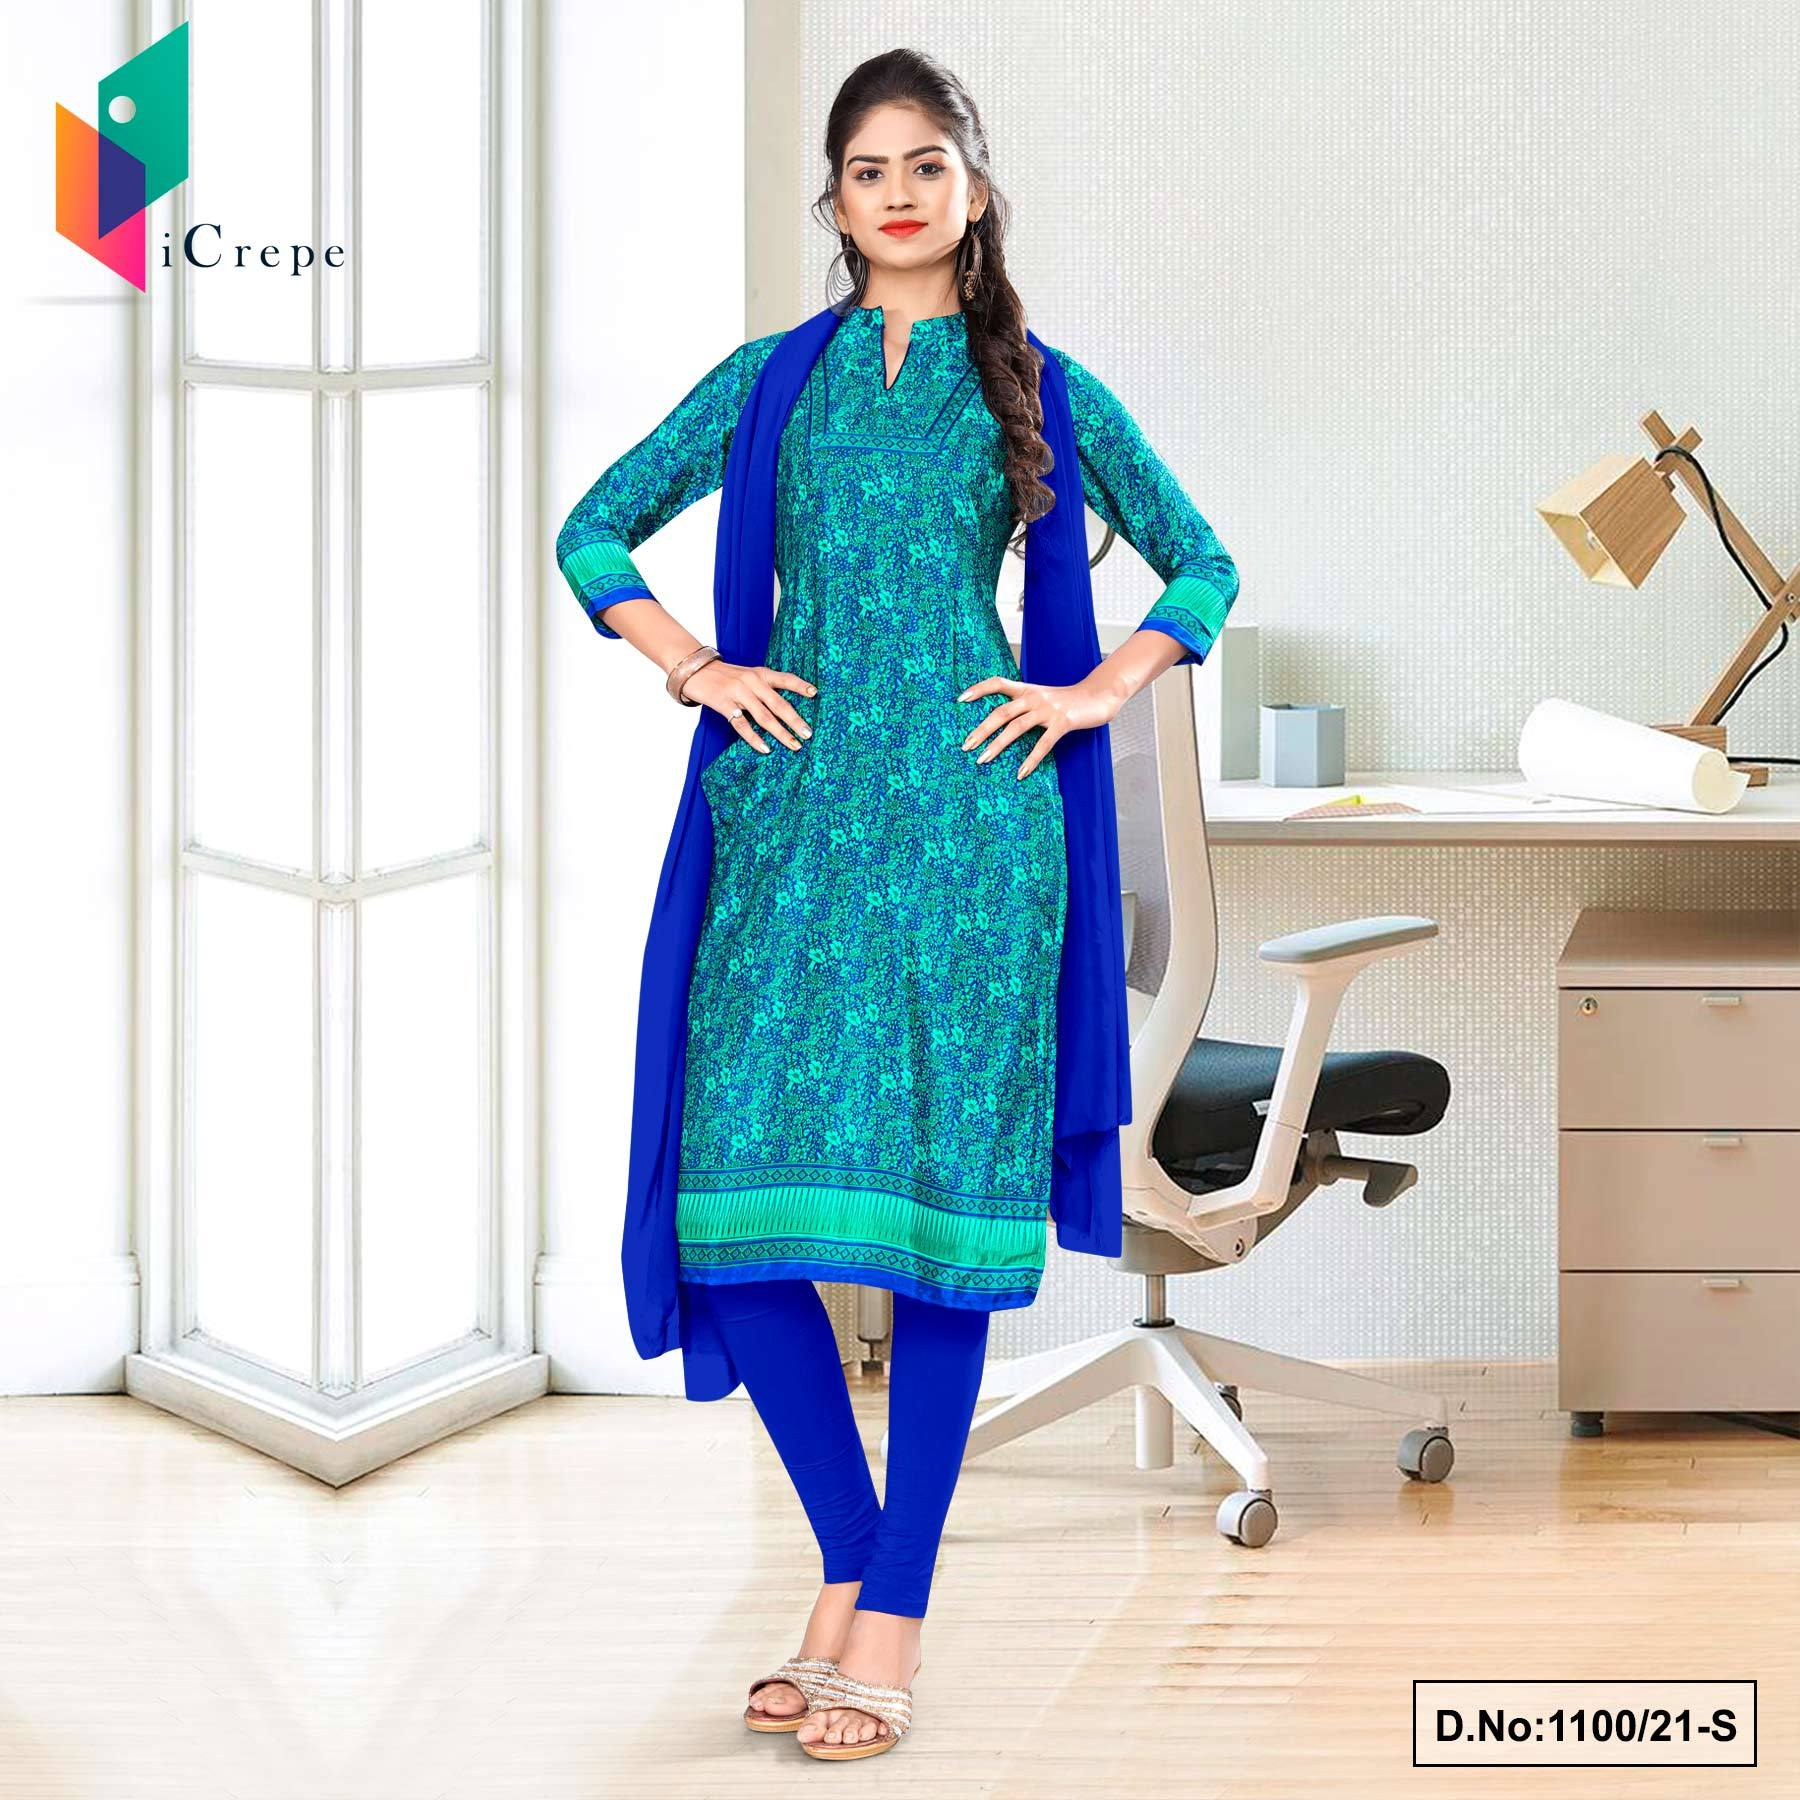 Sea Green Blue Paisley Print Premium Italian Silk Crepe Uniform Salwar Kameez for Office Wear